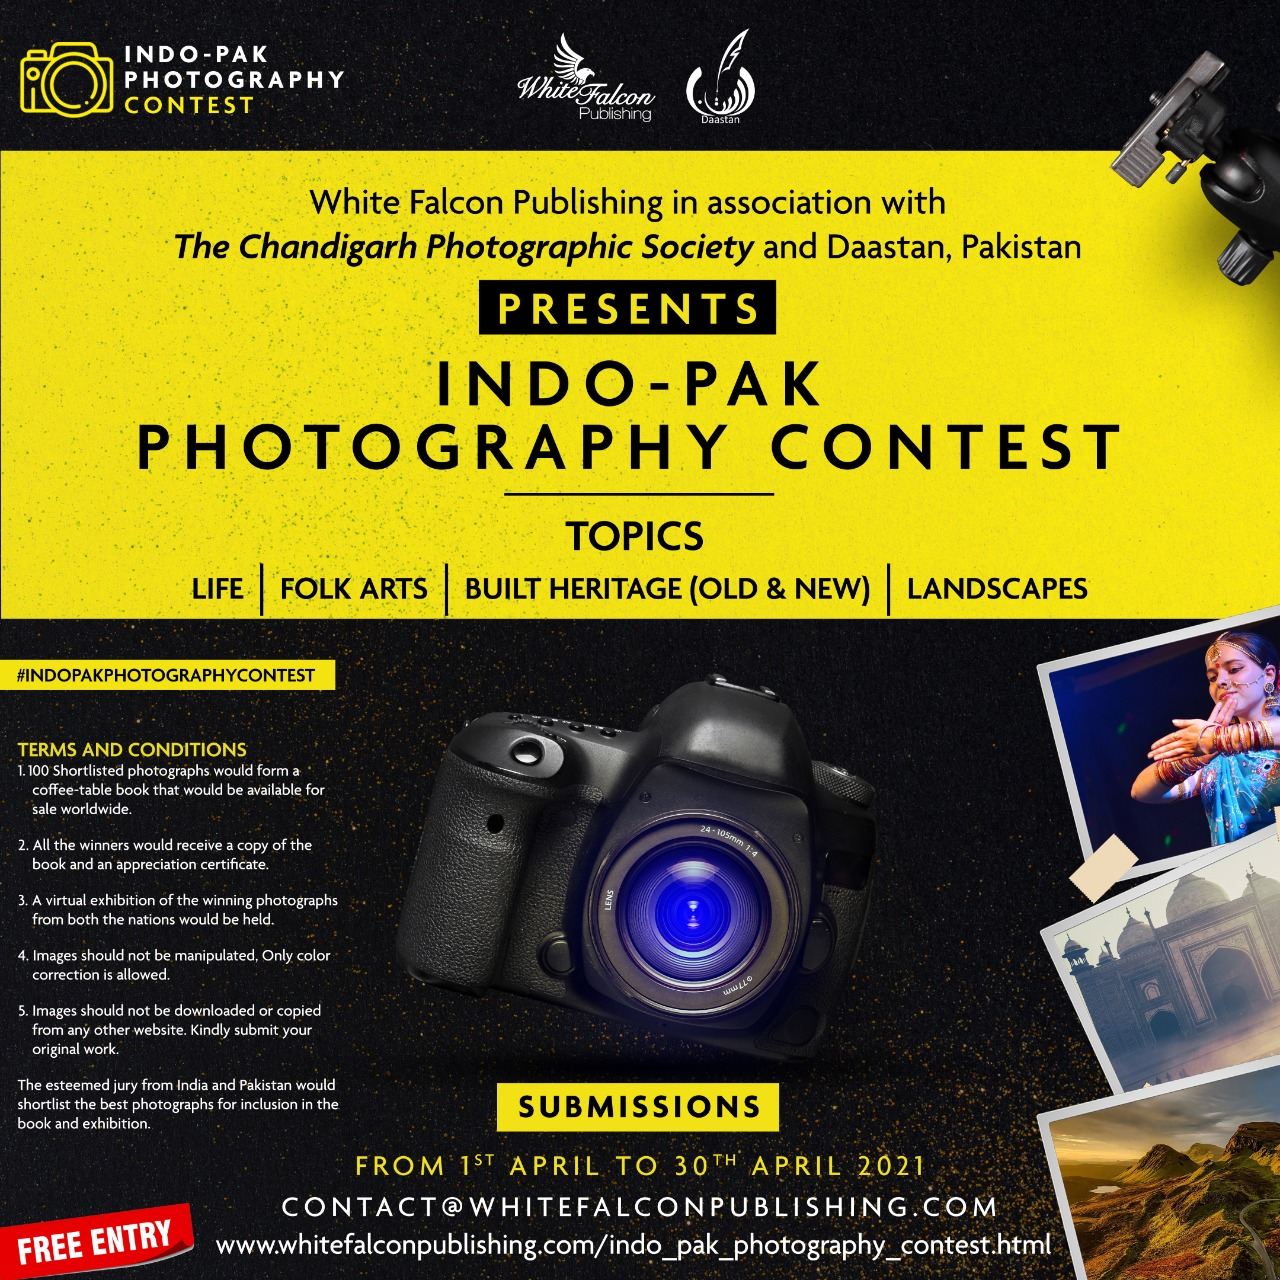 Indo-Pak Photography Contest launched by White Falcon Publishing